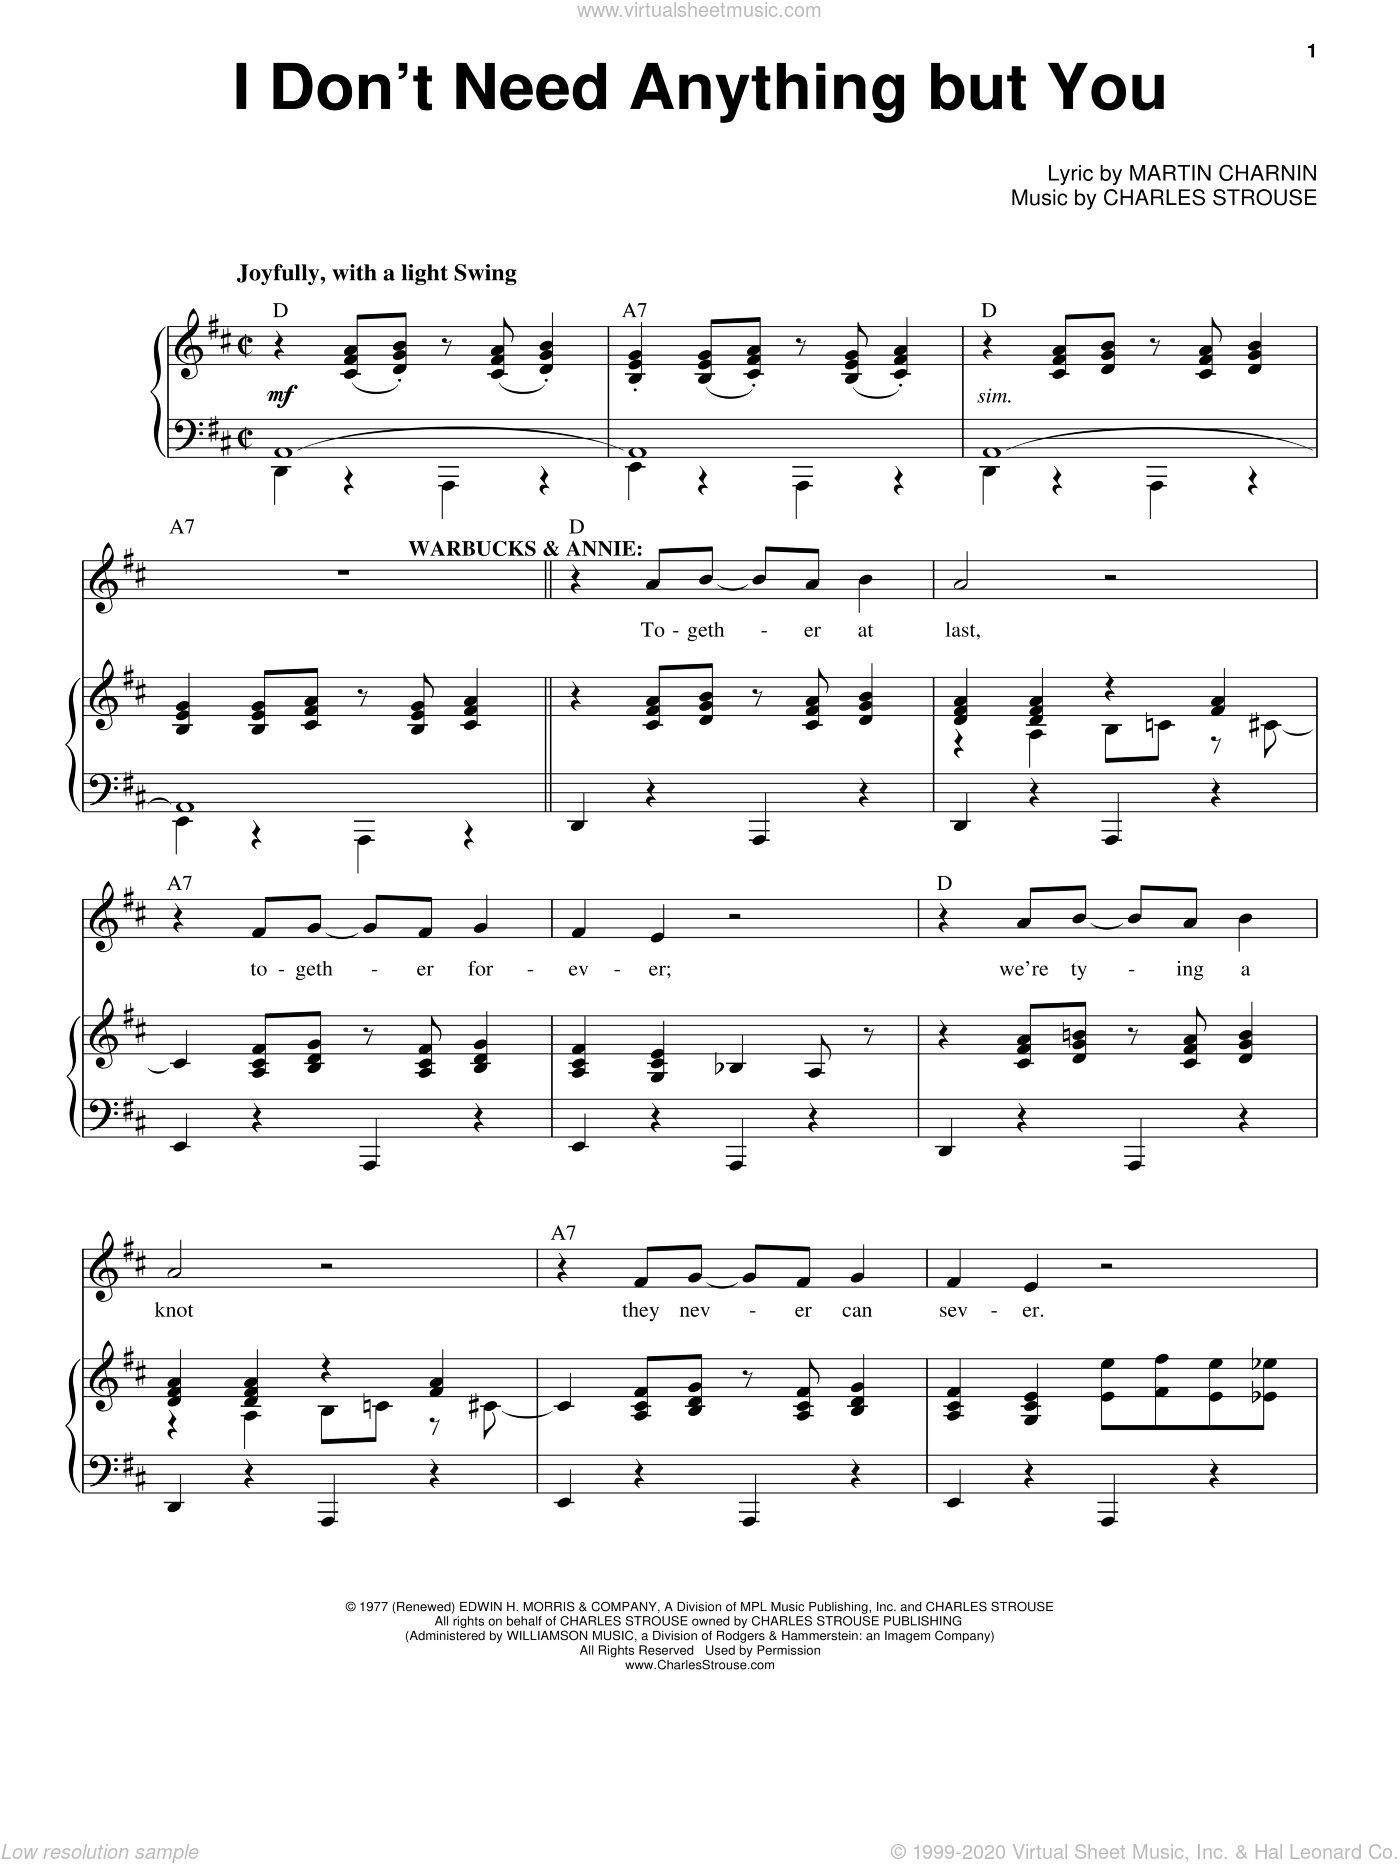 I Don't Need Anything But You sheet music for voice, piano or guitar by Charles Strouse. Score Image Preview.